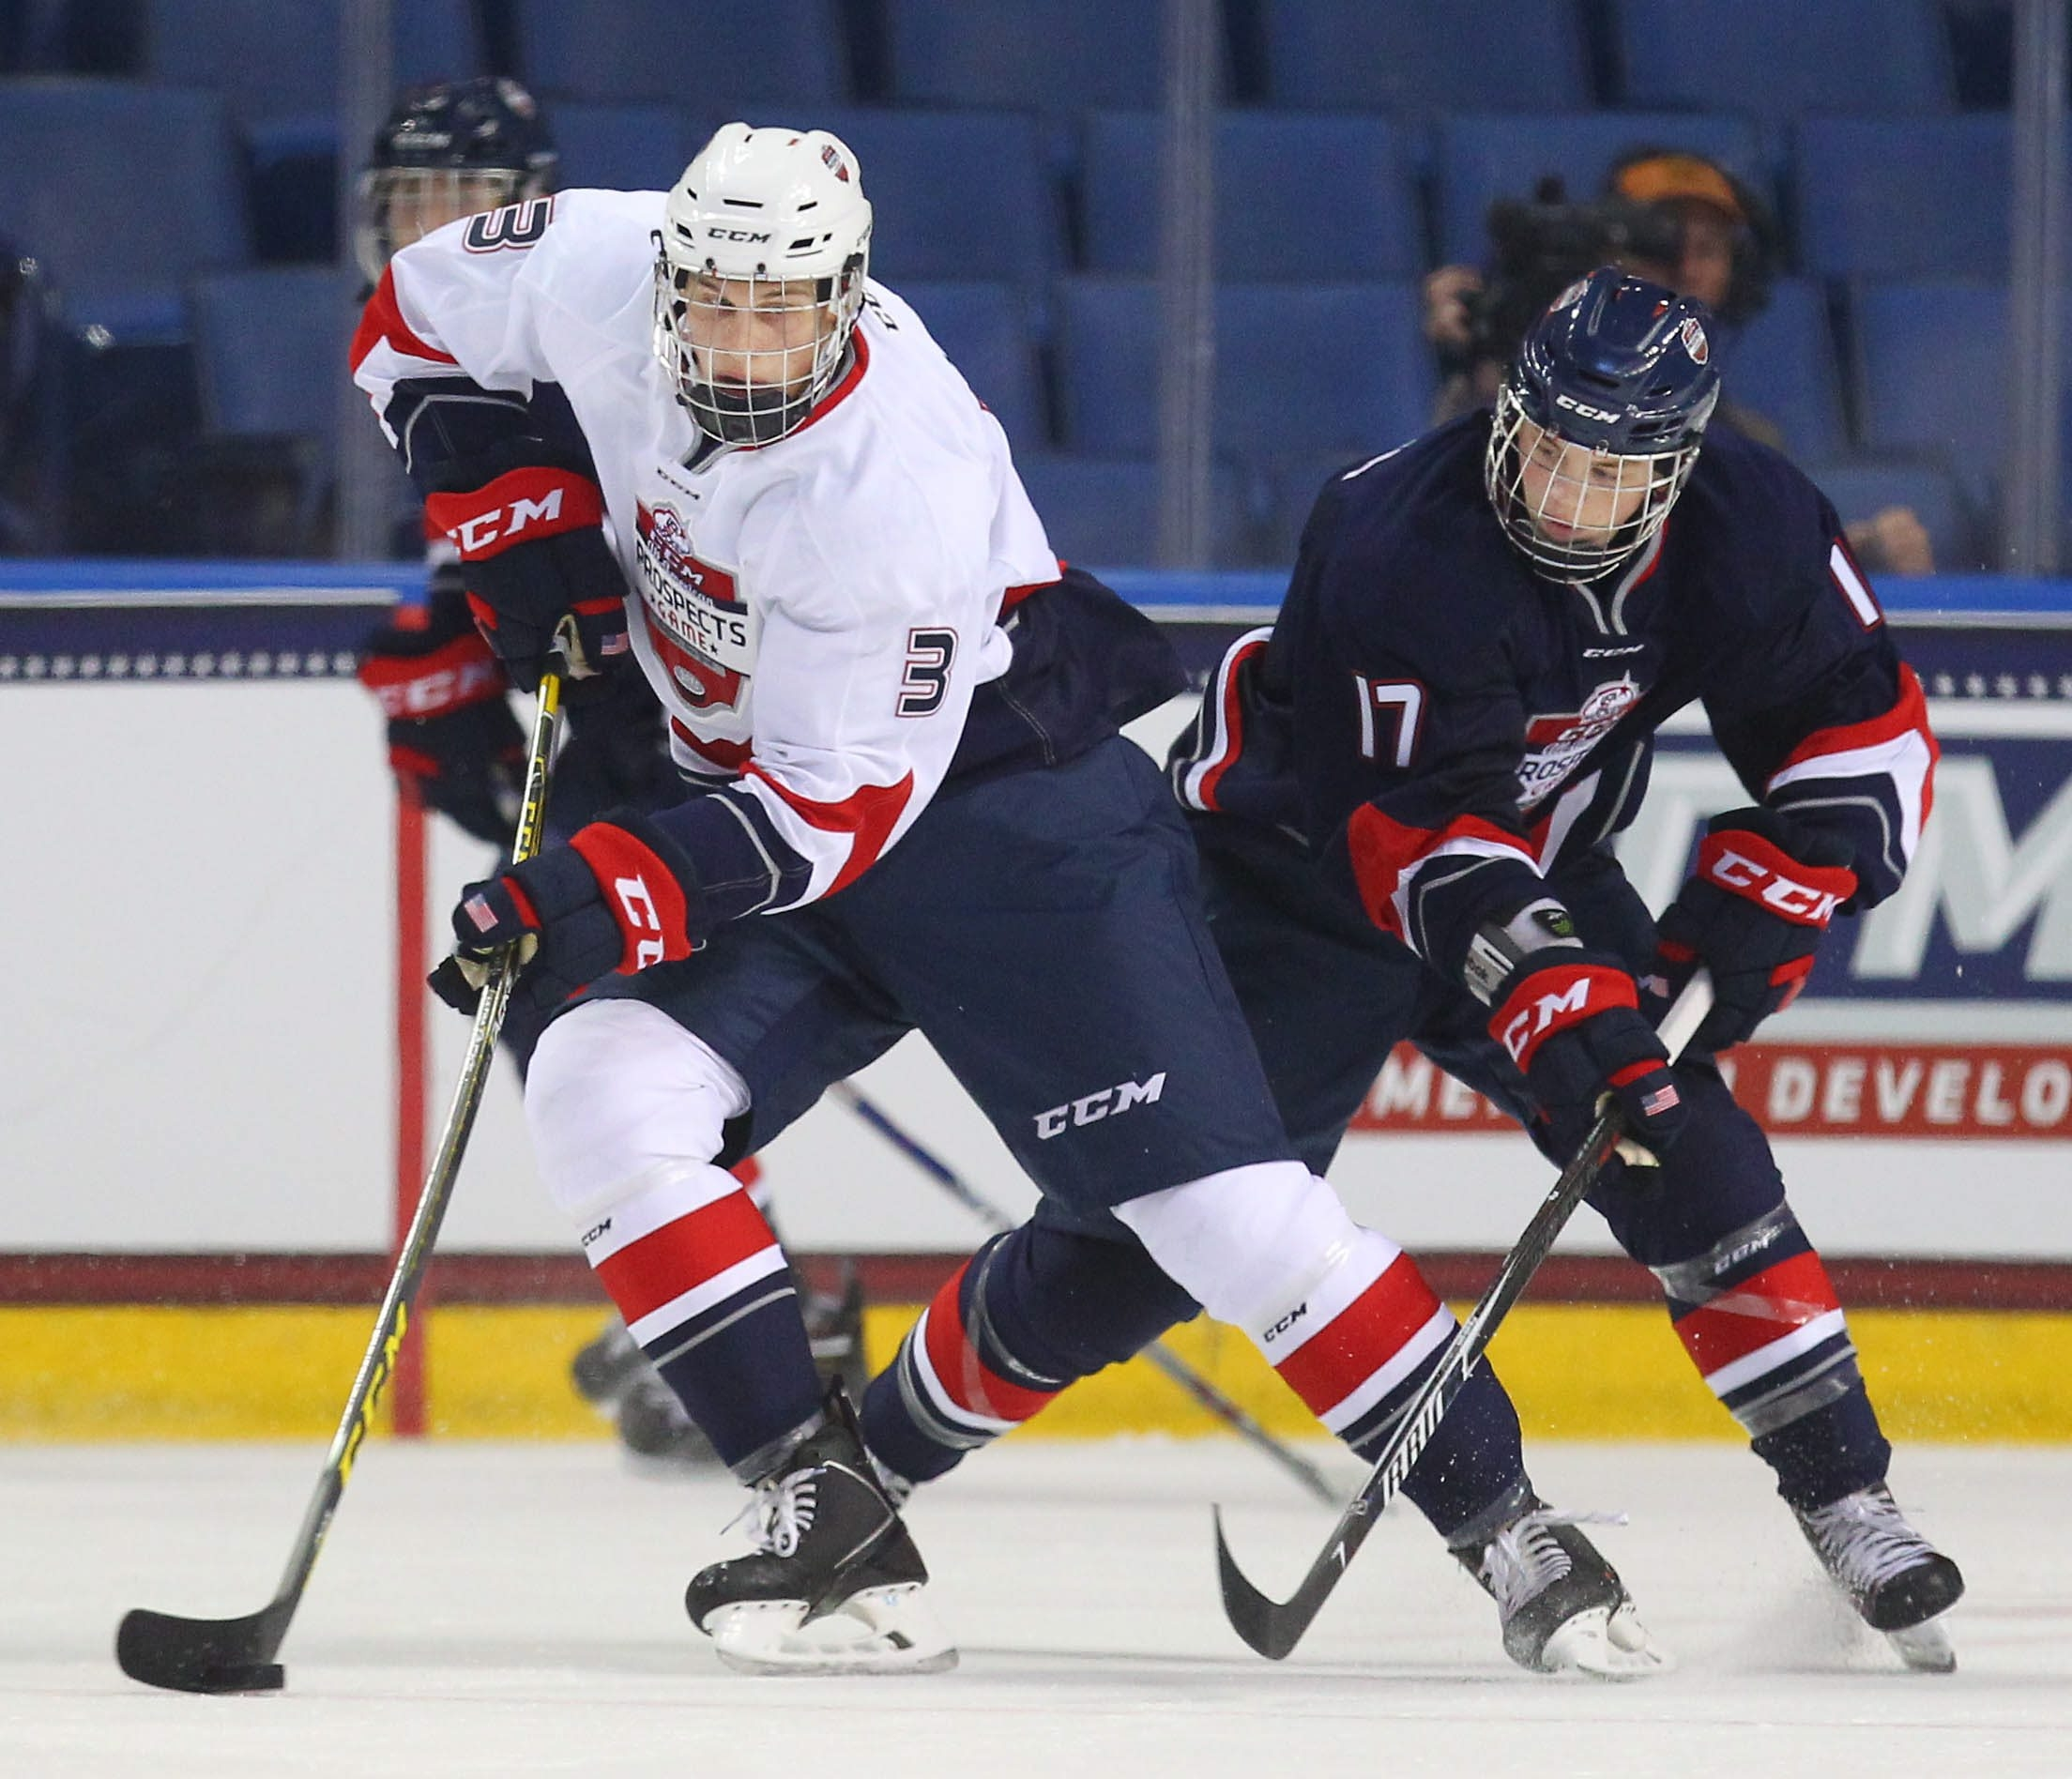 Team Roenick's Griffin Luce keeps the puck from Team Plante's Drake Rymsha during the second period of the CCM/USA Hockey All-American Prospects game at First Niagara Center in Buffalo Thursday, September 24, 2015.     (Mark Mulville/Buffalo News)